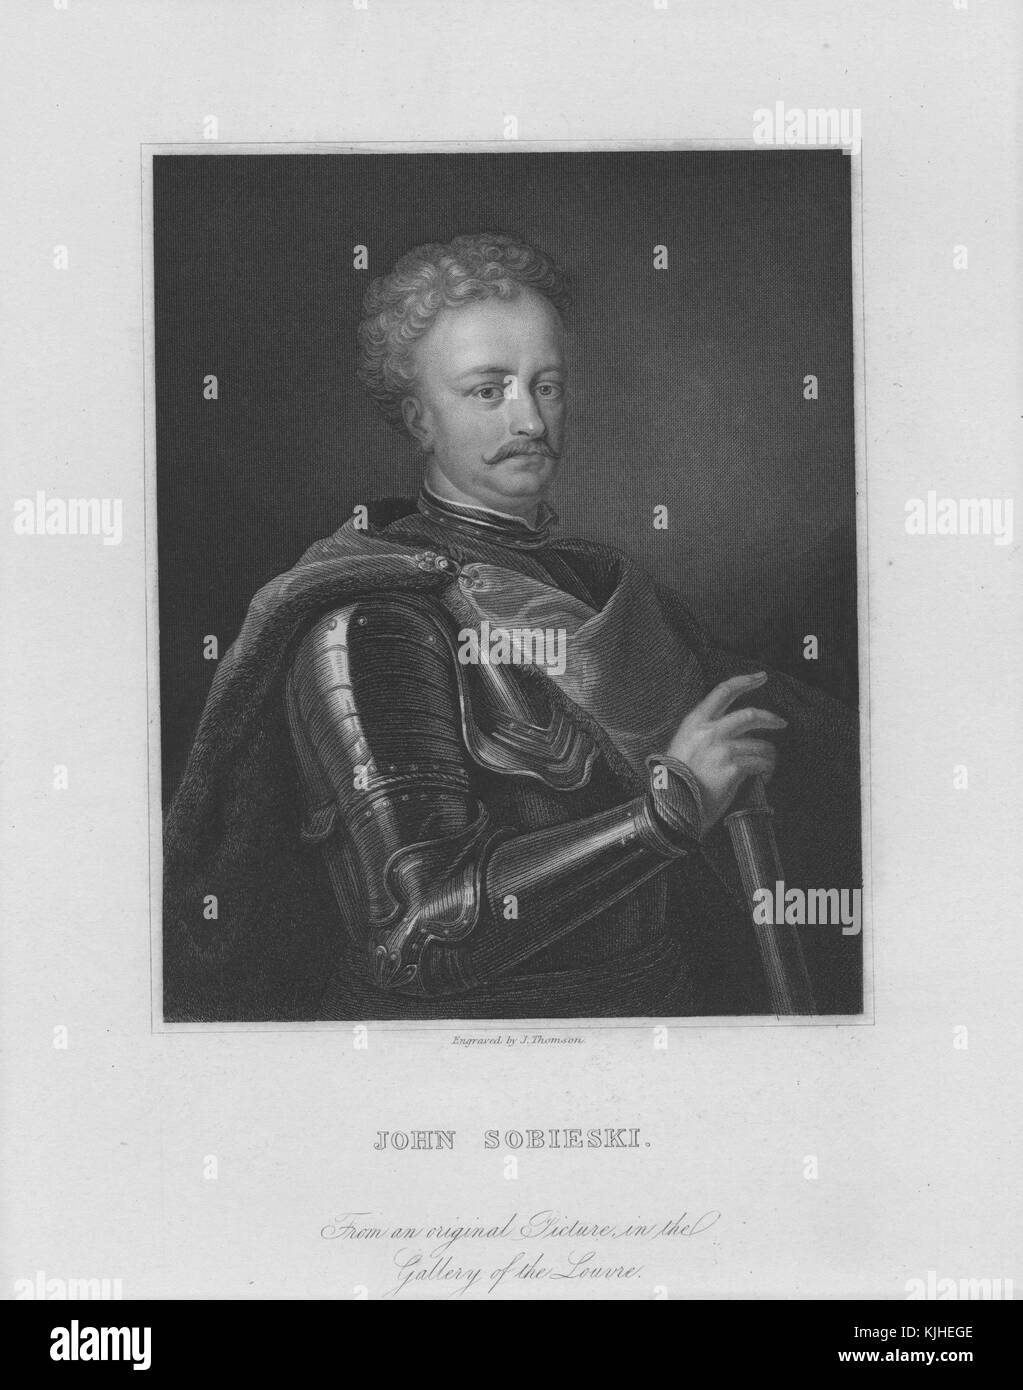 Engraved portrait of John Sobieski, from 1674 until his death King of Poland and Grand Duke of Lithuania, was one Stock Photo